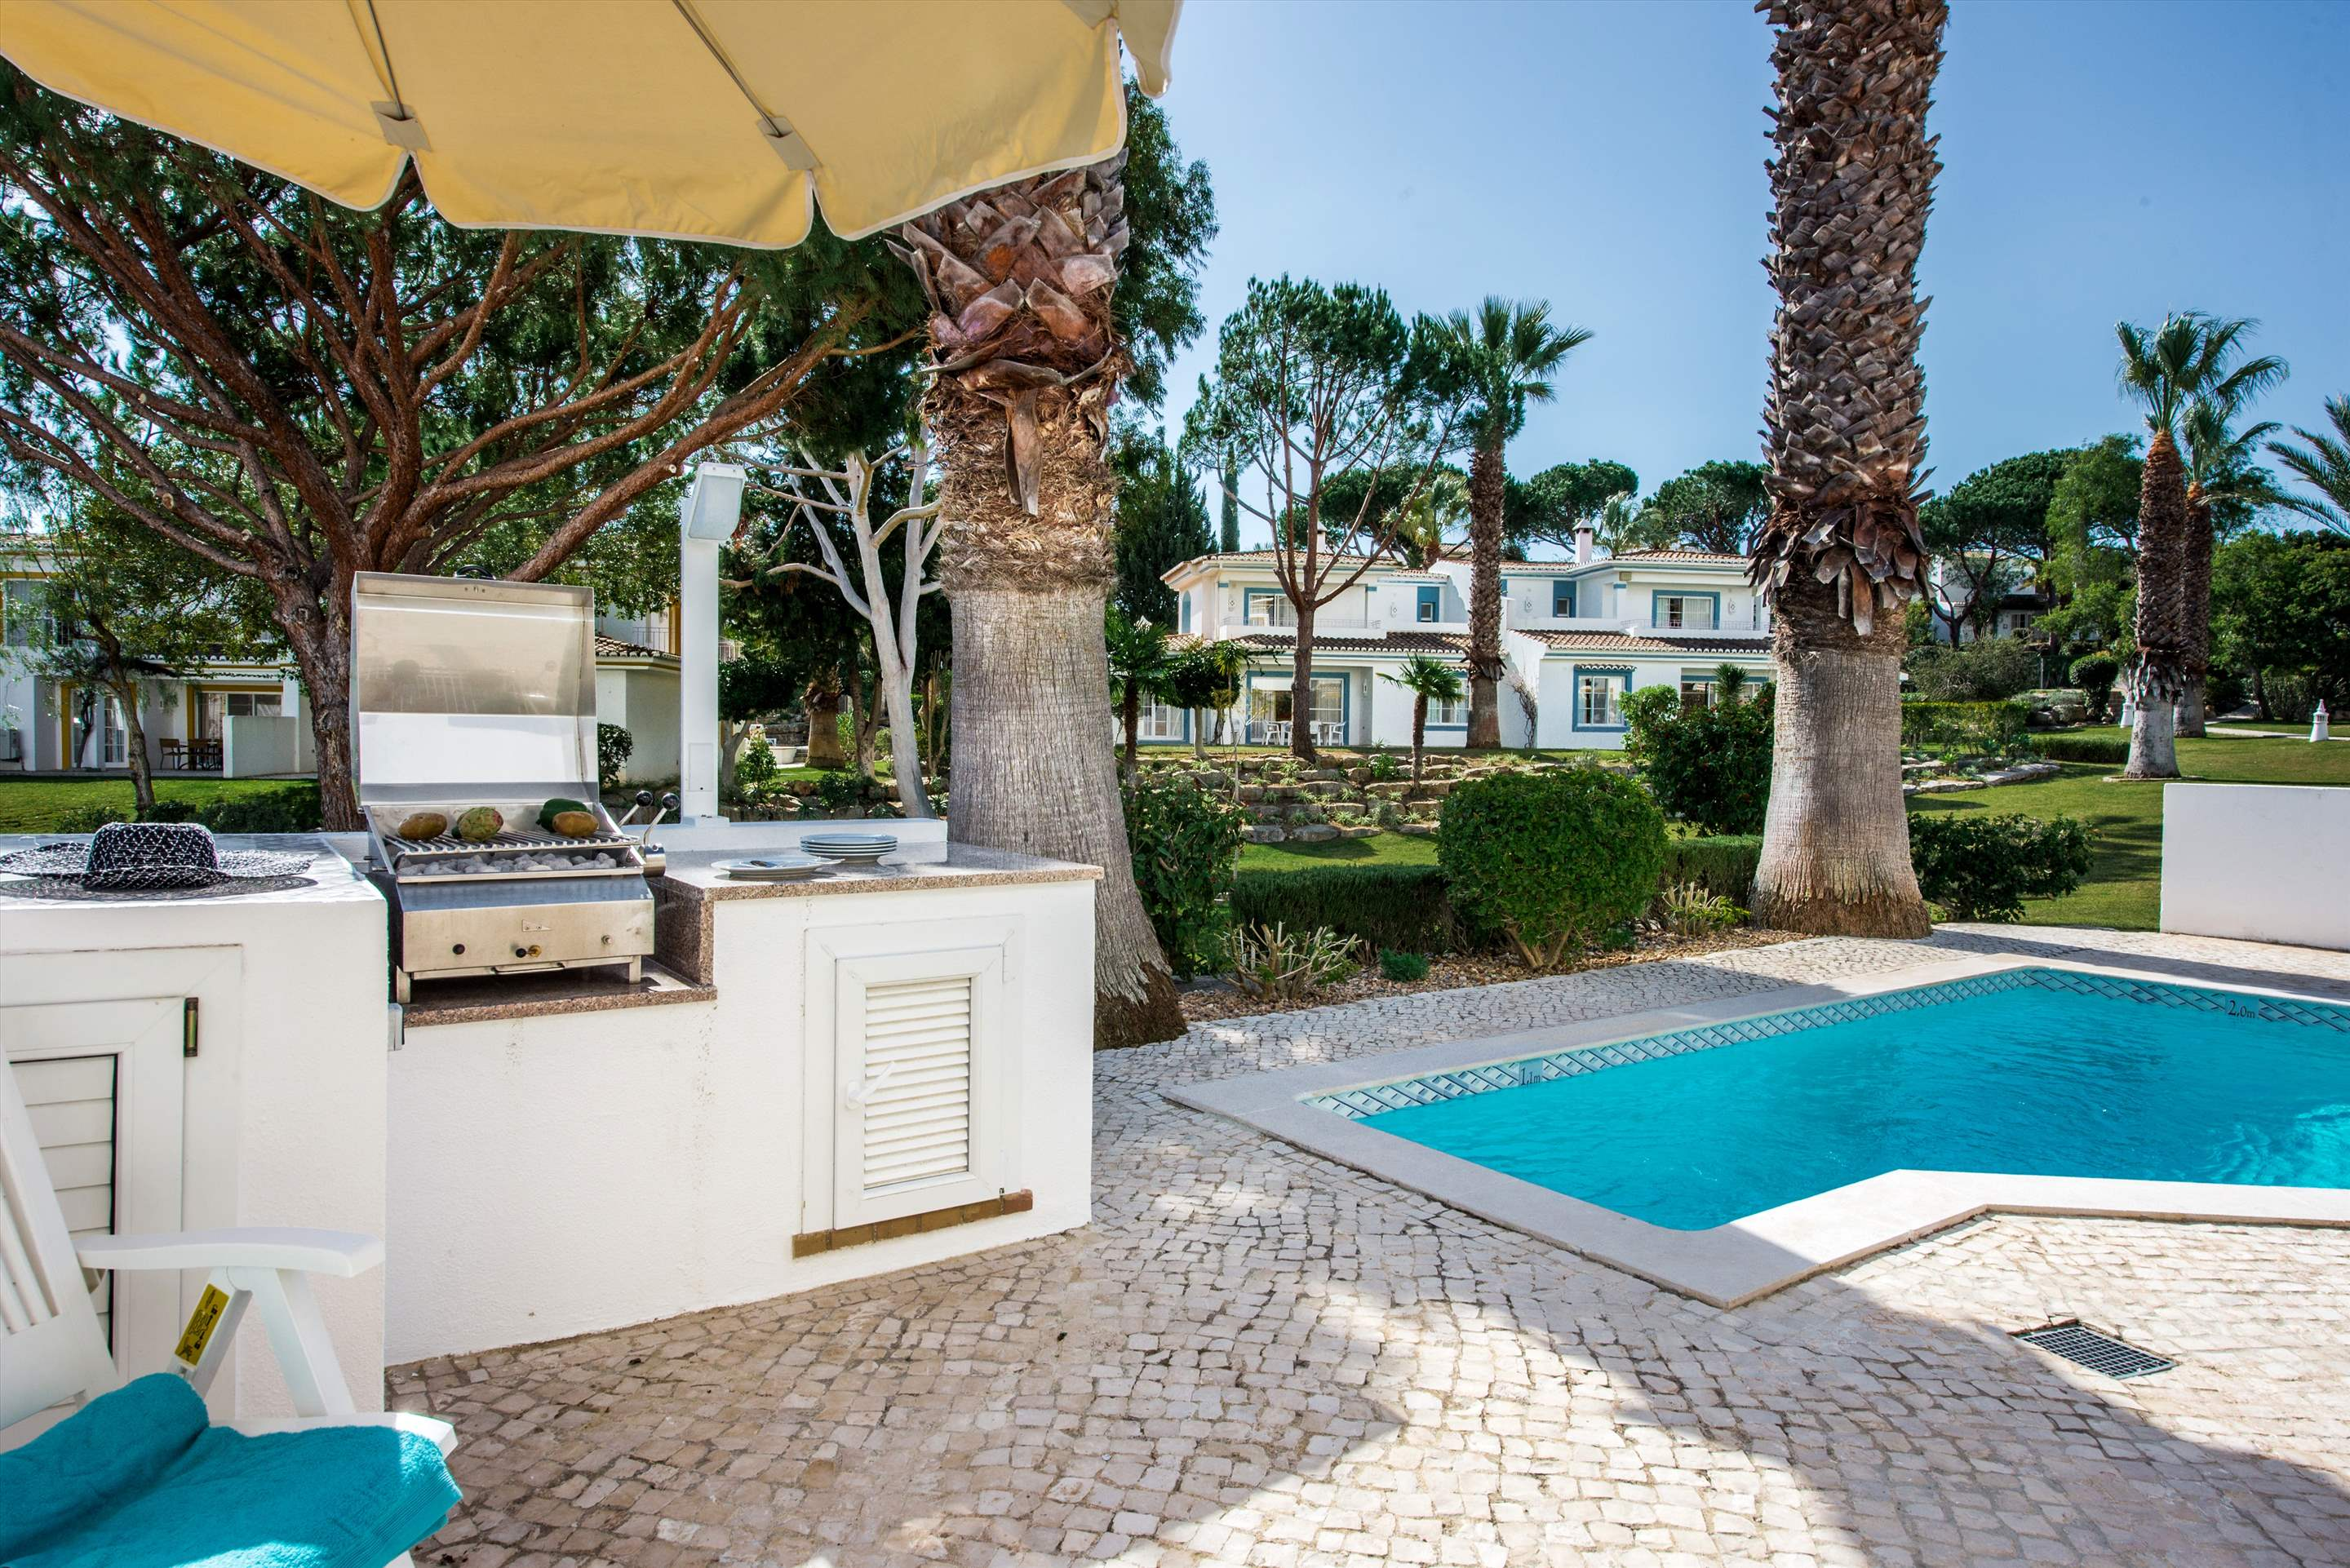 Four Seasons Fairways 3 Bed Hillside Apartment, Thursday Arrival, 3 bedroom villa in Four Seasons Fairways, Algarve Photo #15